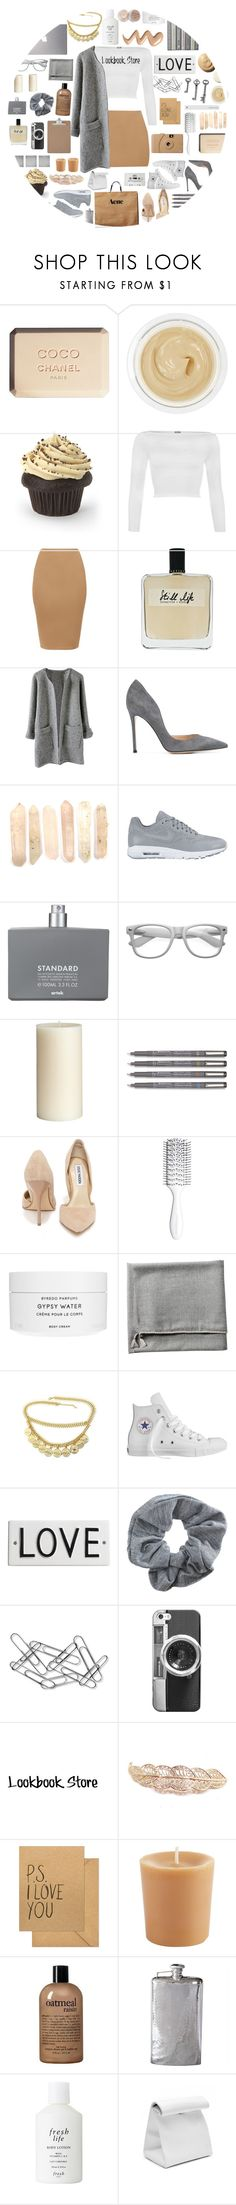 """""""The Lookbook Store! (Rocks)"""" by stelbell ❤ liked on Polyvore featuring Chanel, Chantecaille, WearAll, Olfactive Studio, Gianvito Rossi, NIKE, Comme des Garçons, Retrò, Samsung and Pier 1 Imports"""